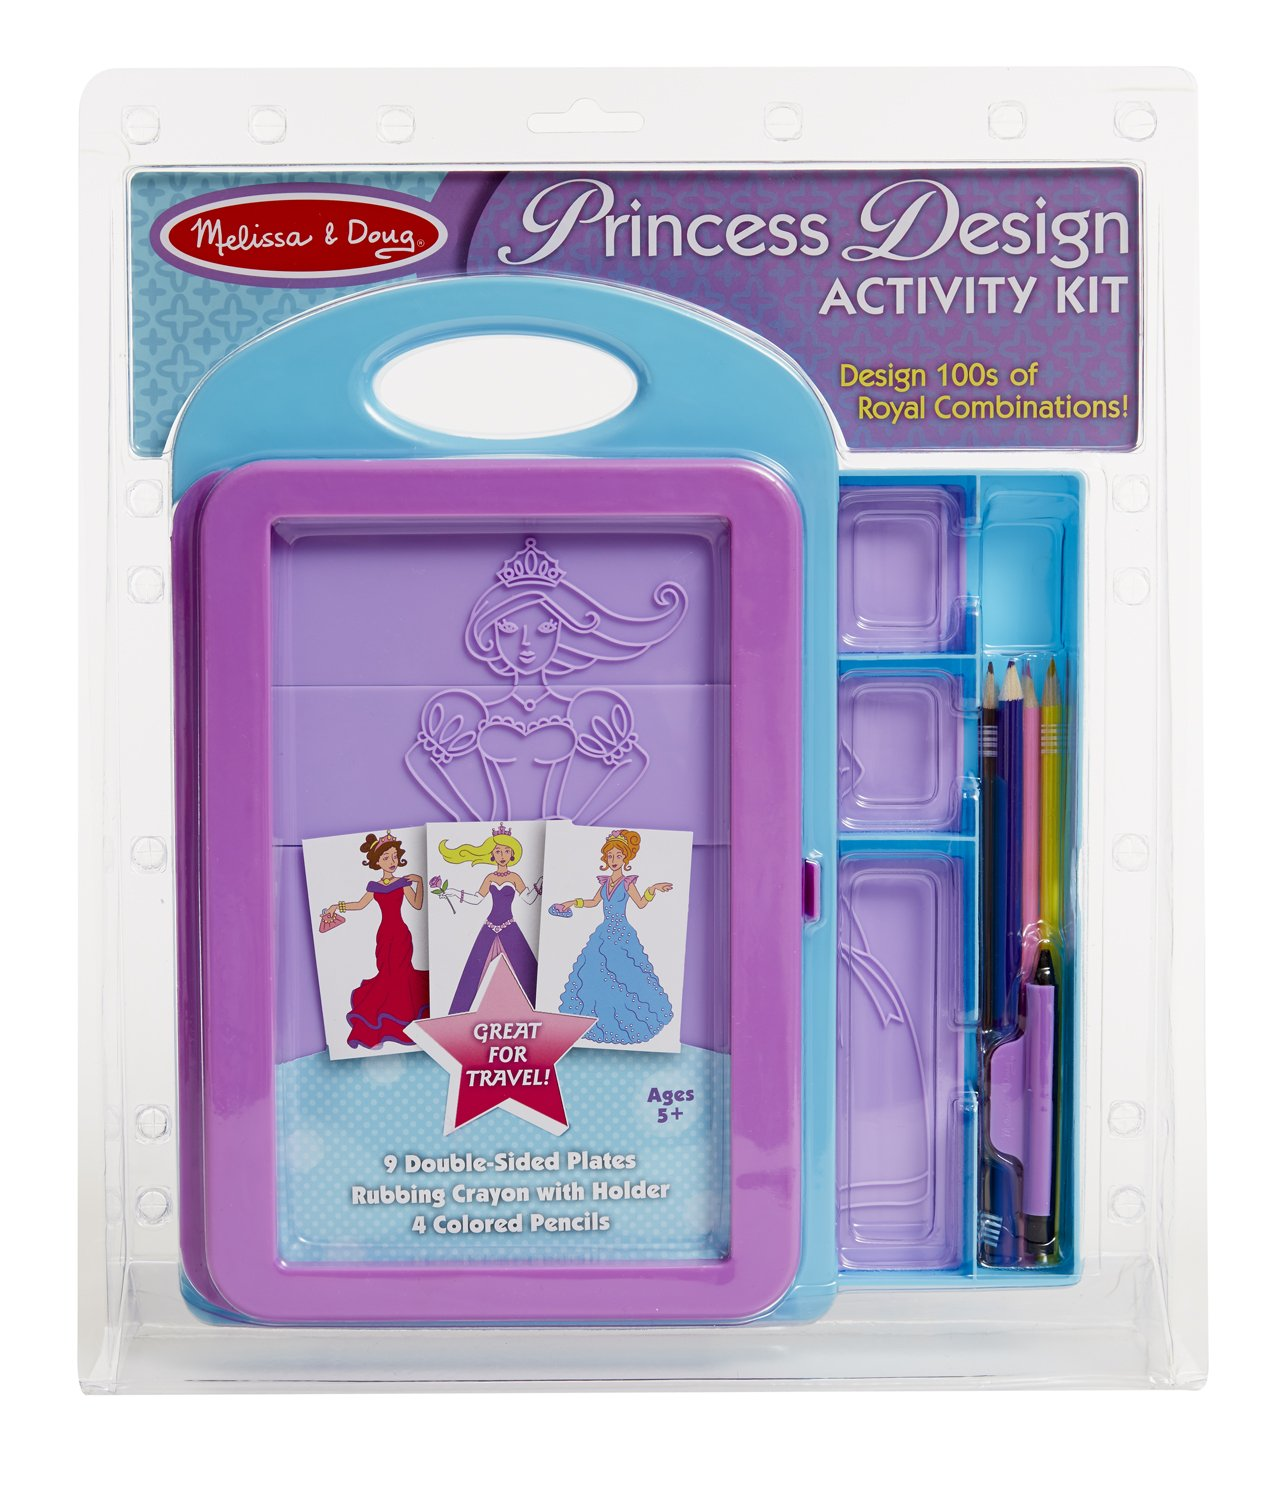 Barbie Fashion Plates Rub Coloring Melissa amp Doug Princess Design